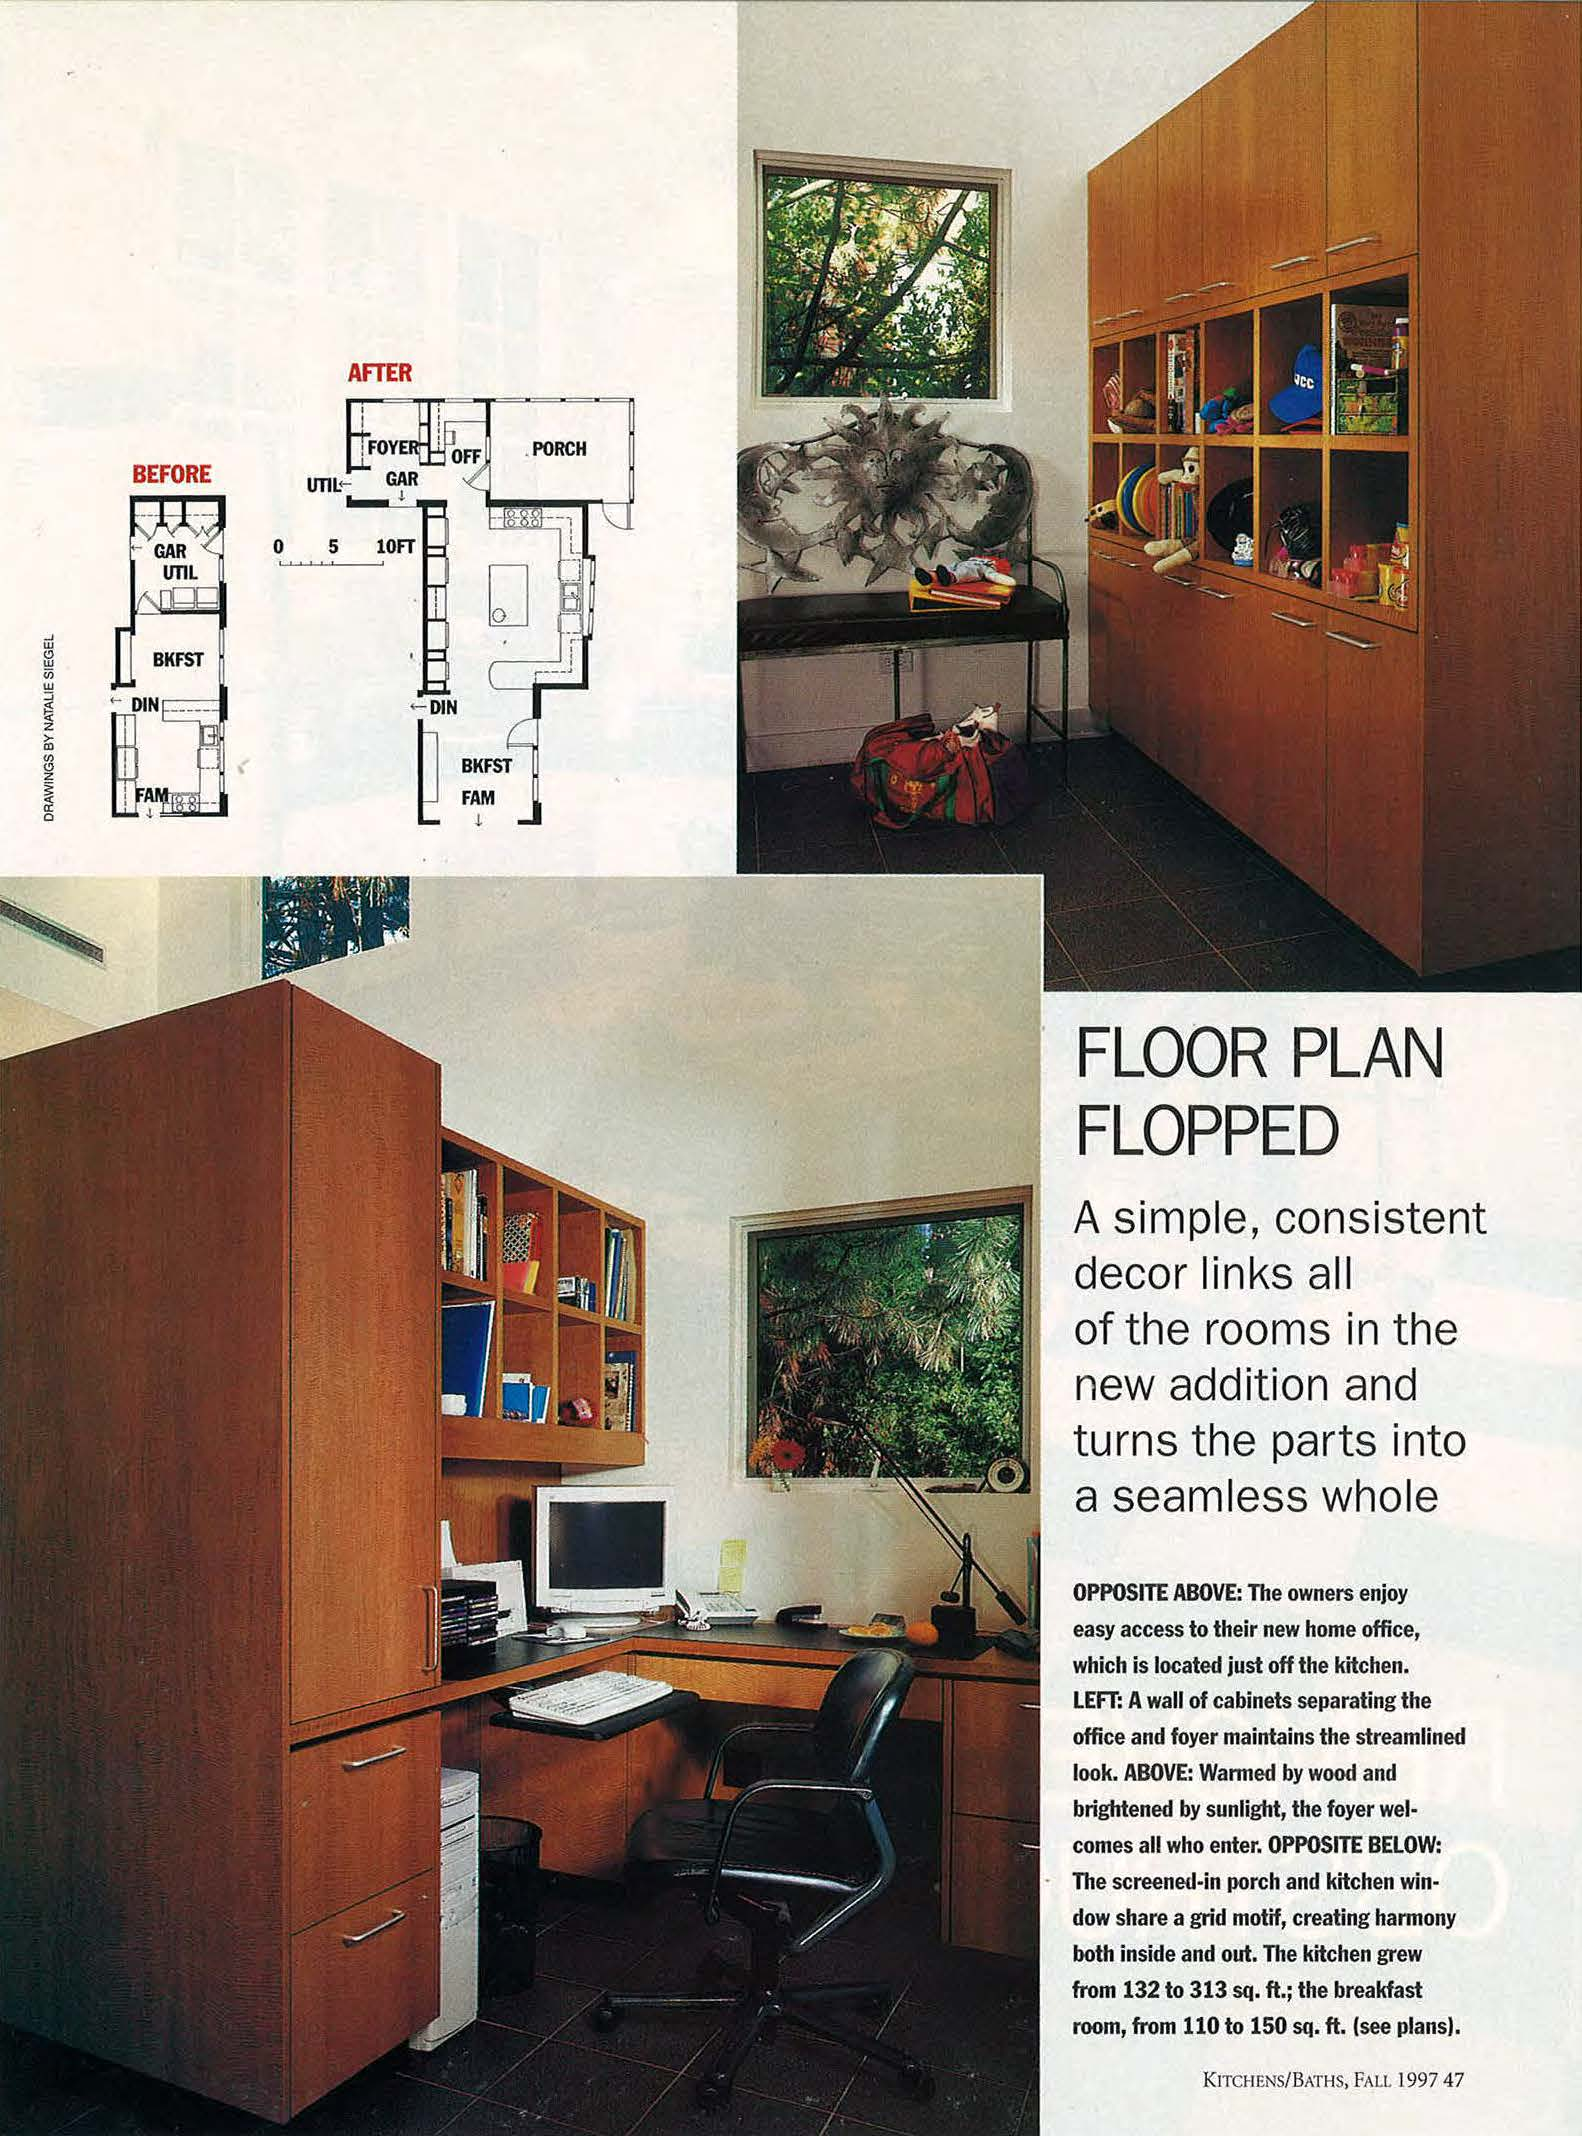 Pages from 1997 House Beautiful Kitchens & Baths -7.jpg